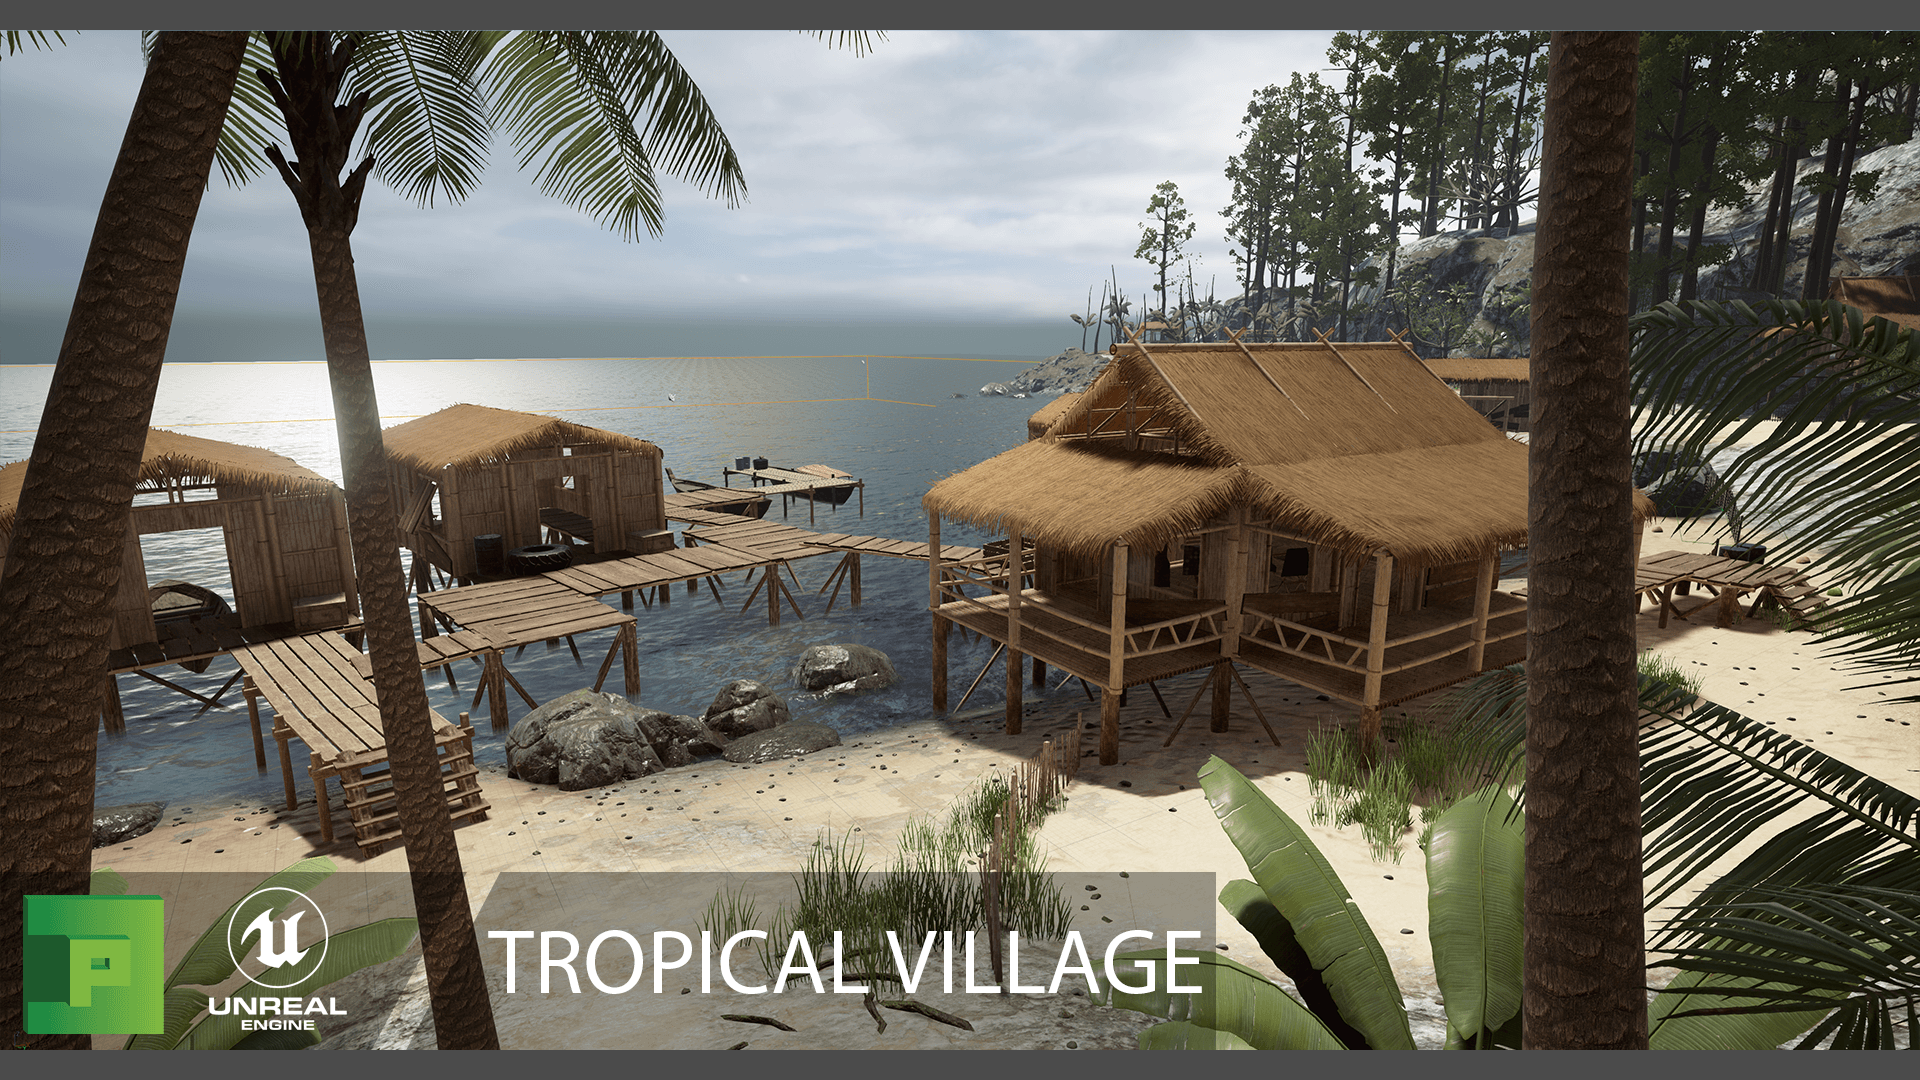 TropicalVillage_04